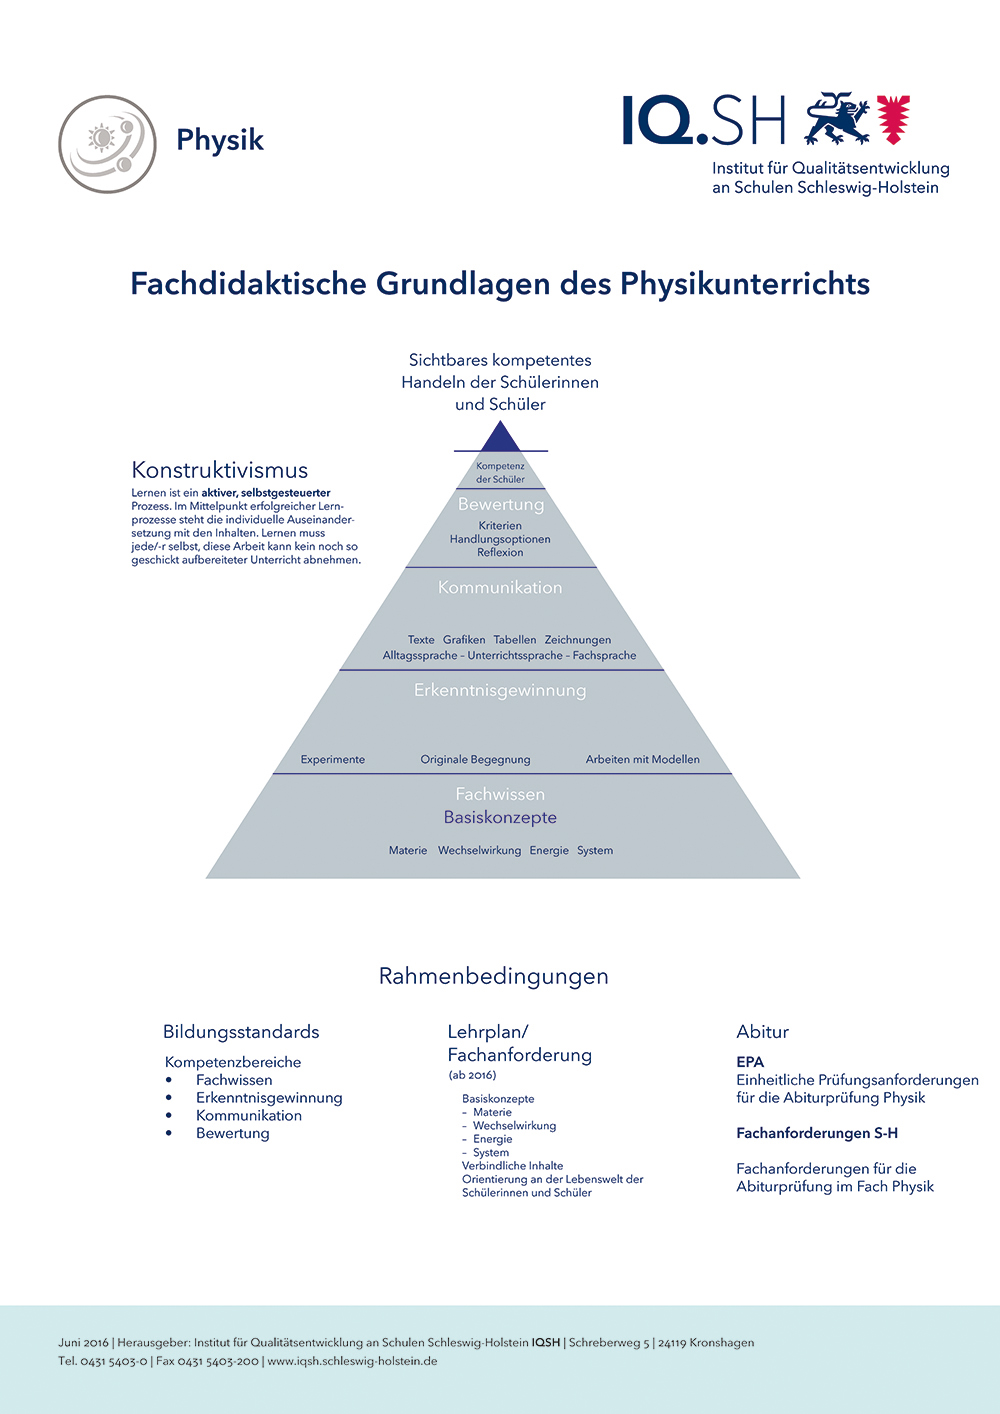 Physik.jpg?auto=compress,format&colorquant=1600